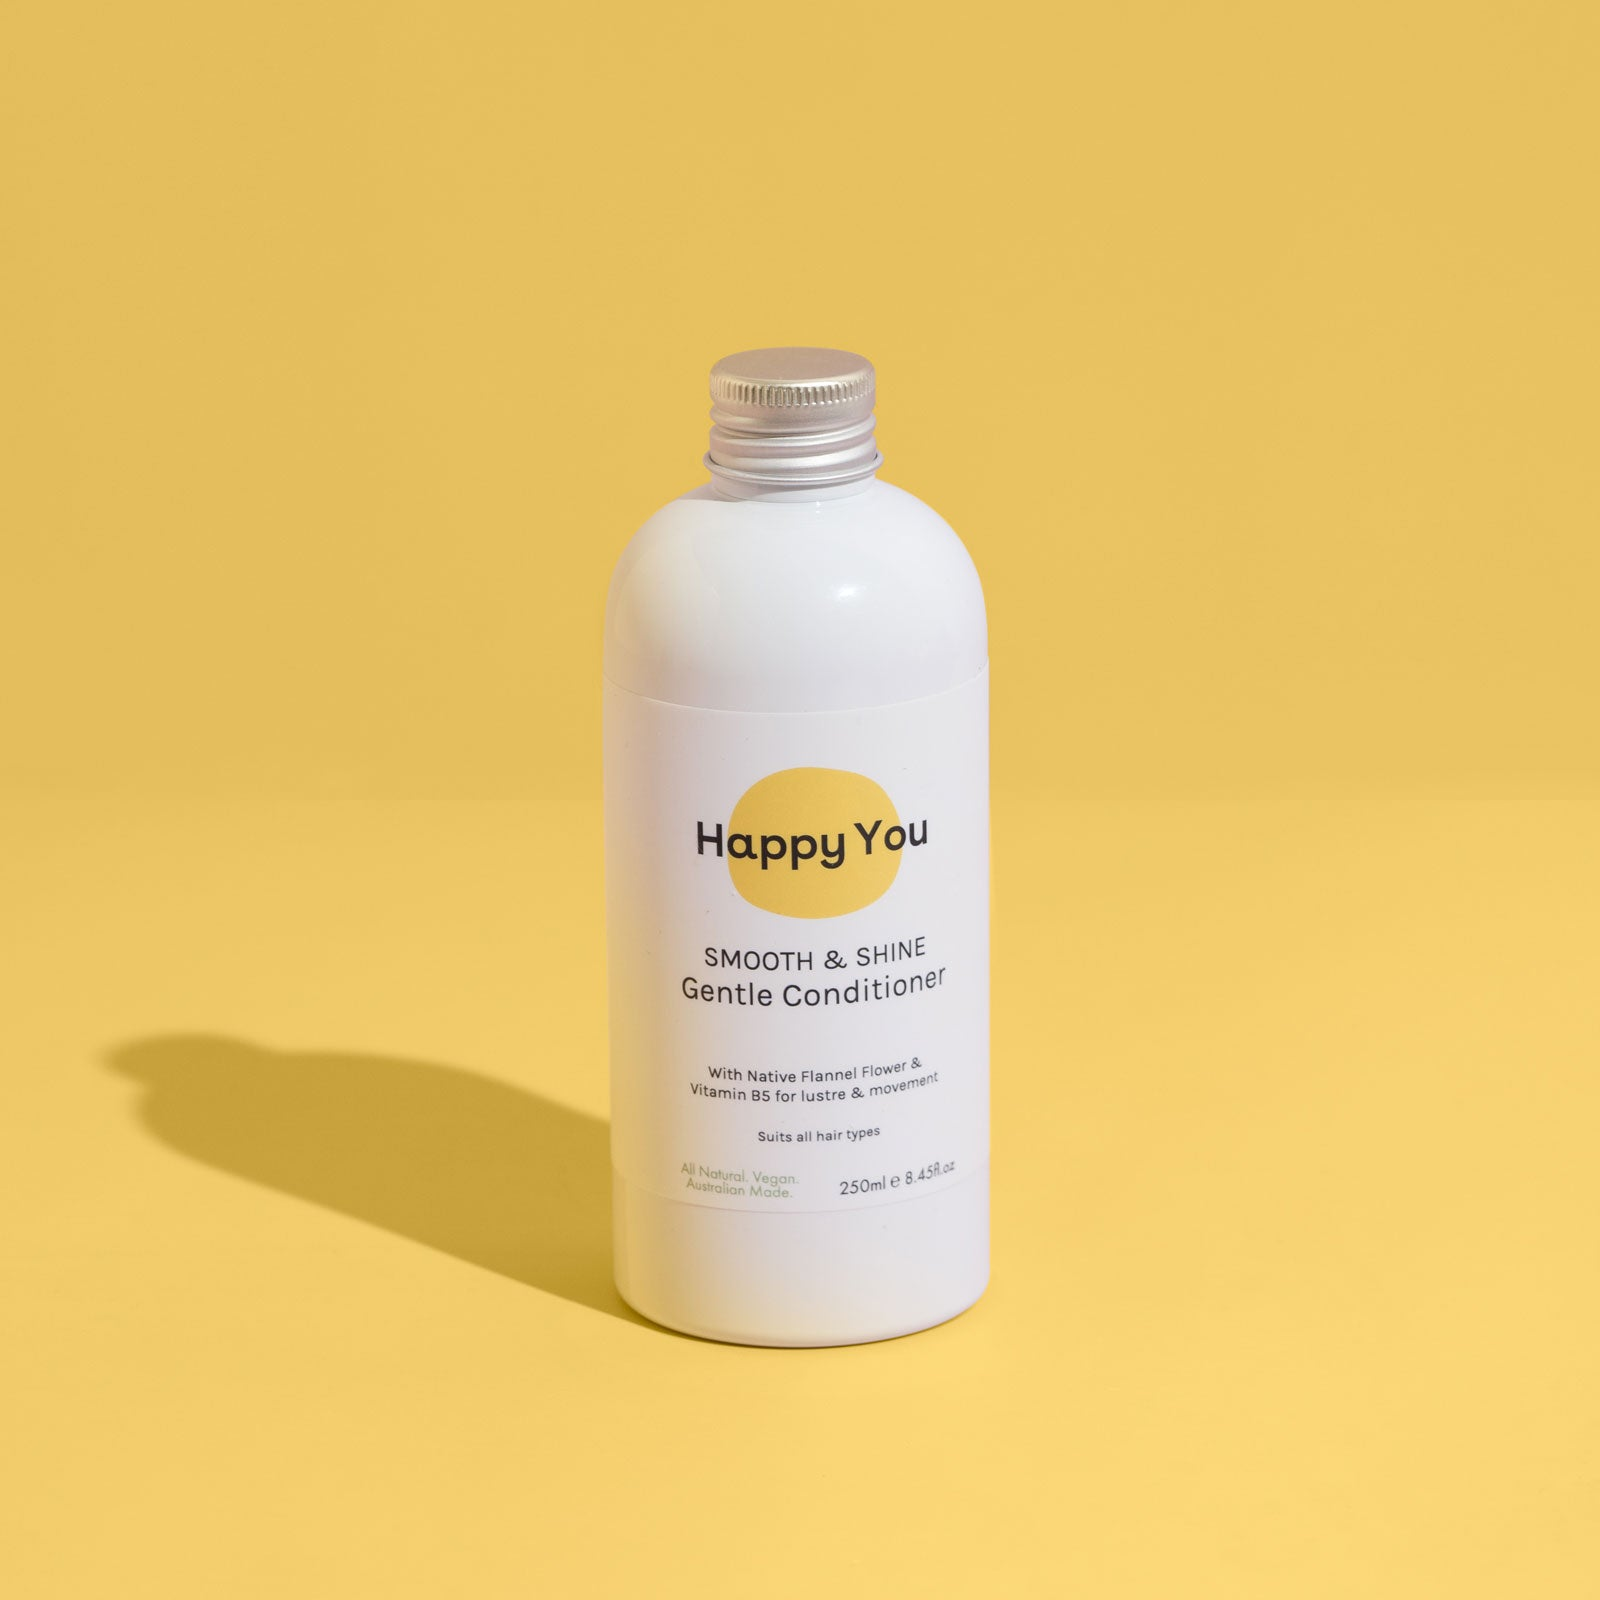 'Happy You' Gentle Conditioner